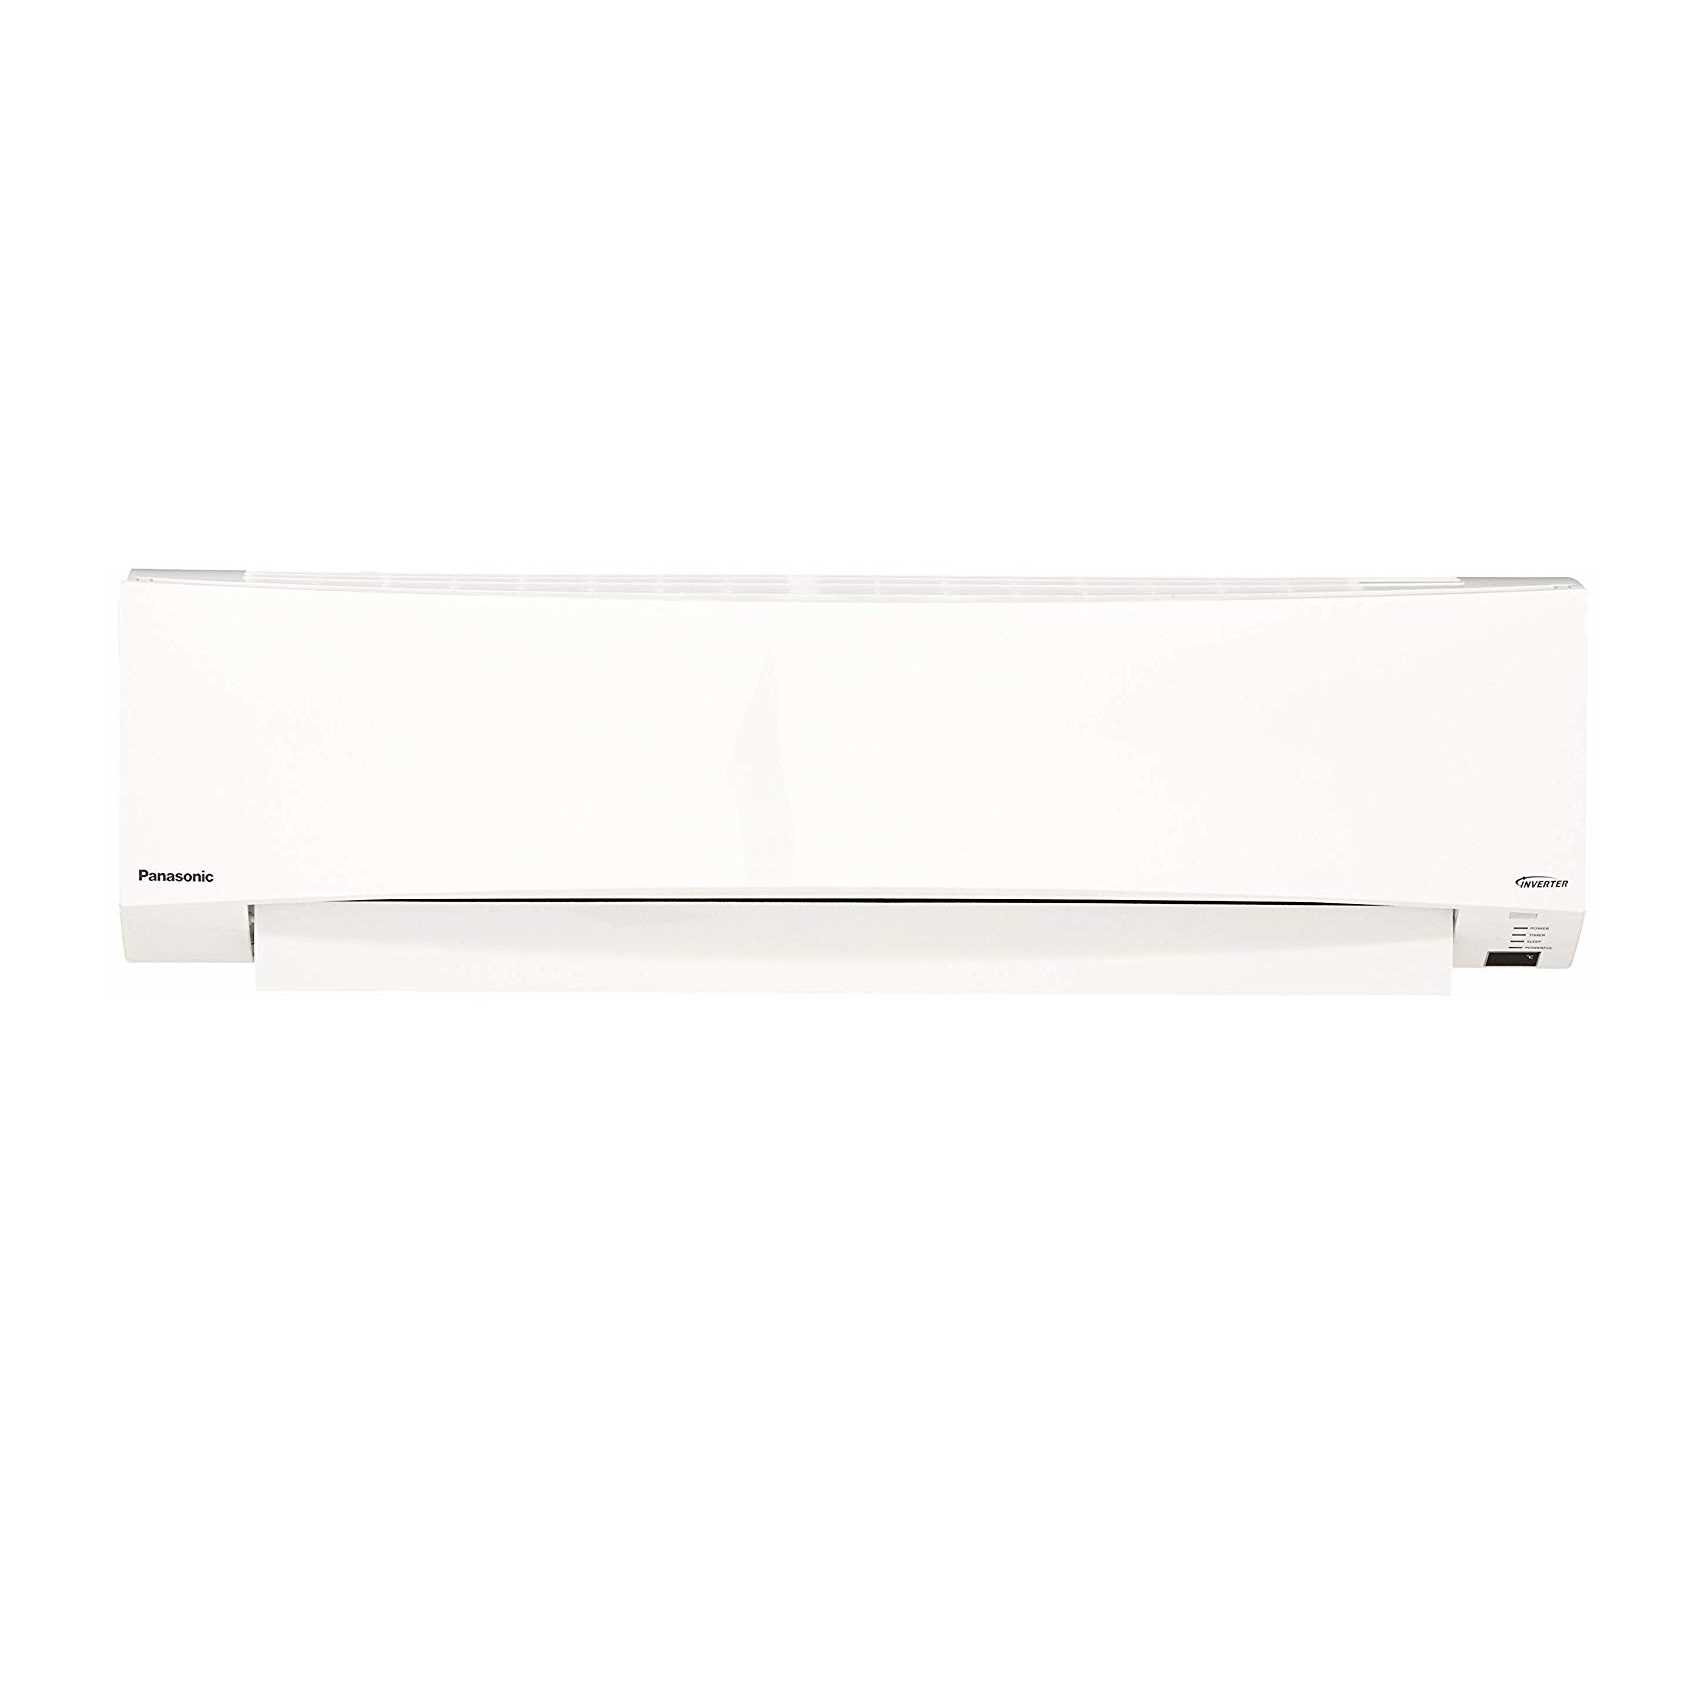 Panasonic CS CU NU12VKYW 1 Ton 5 Star Inverter Split AC